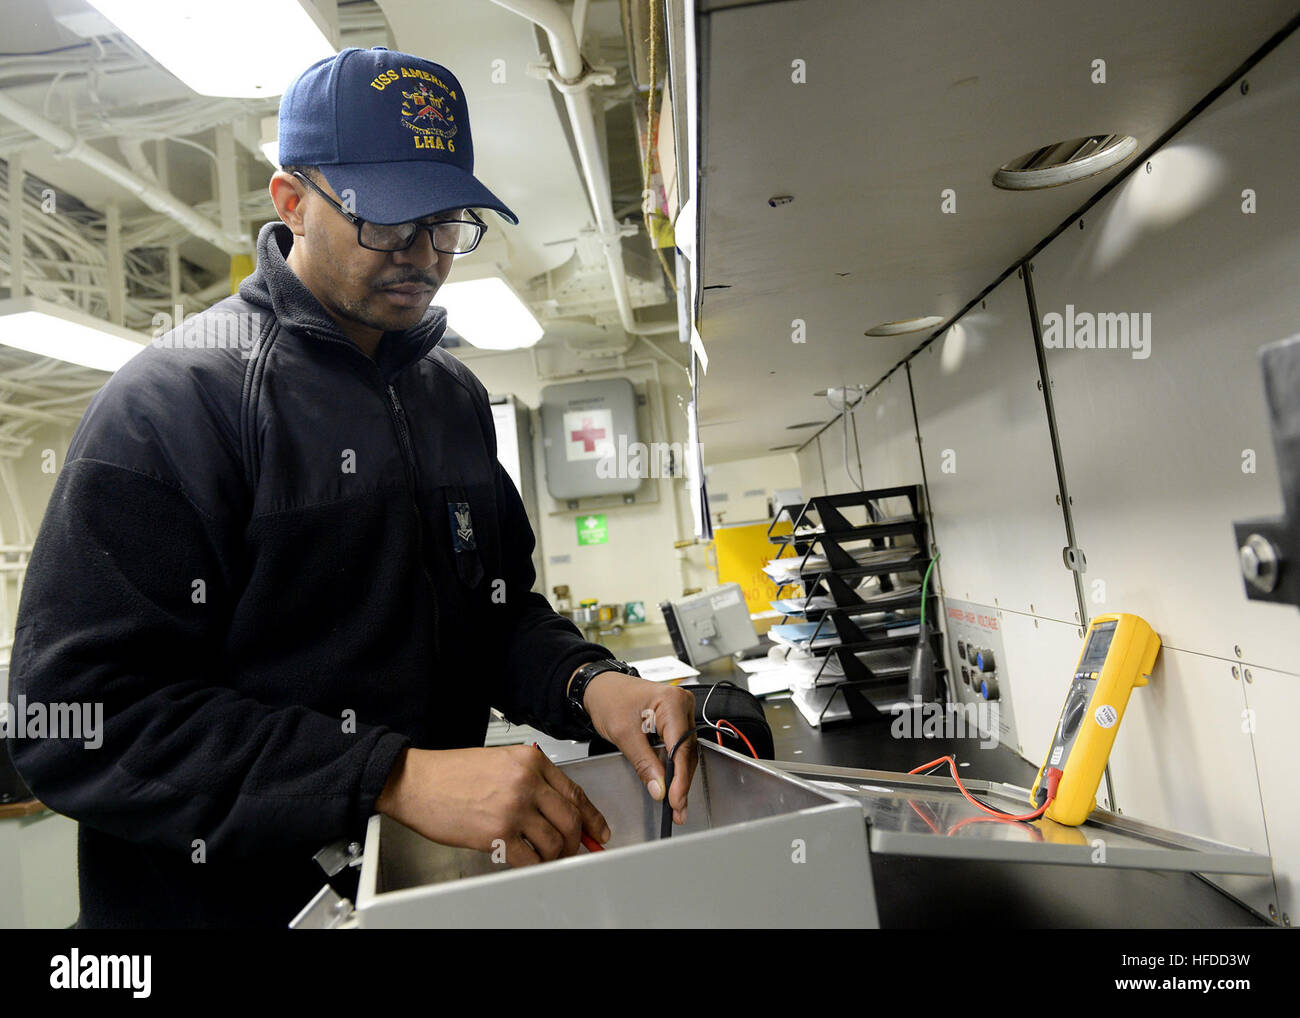 U.S. Navy Interior Communications Electrician 2nd Class Allen ...